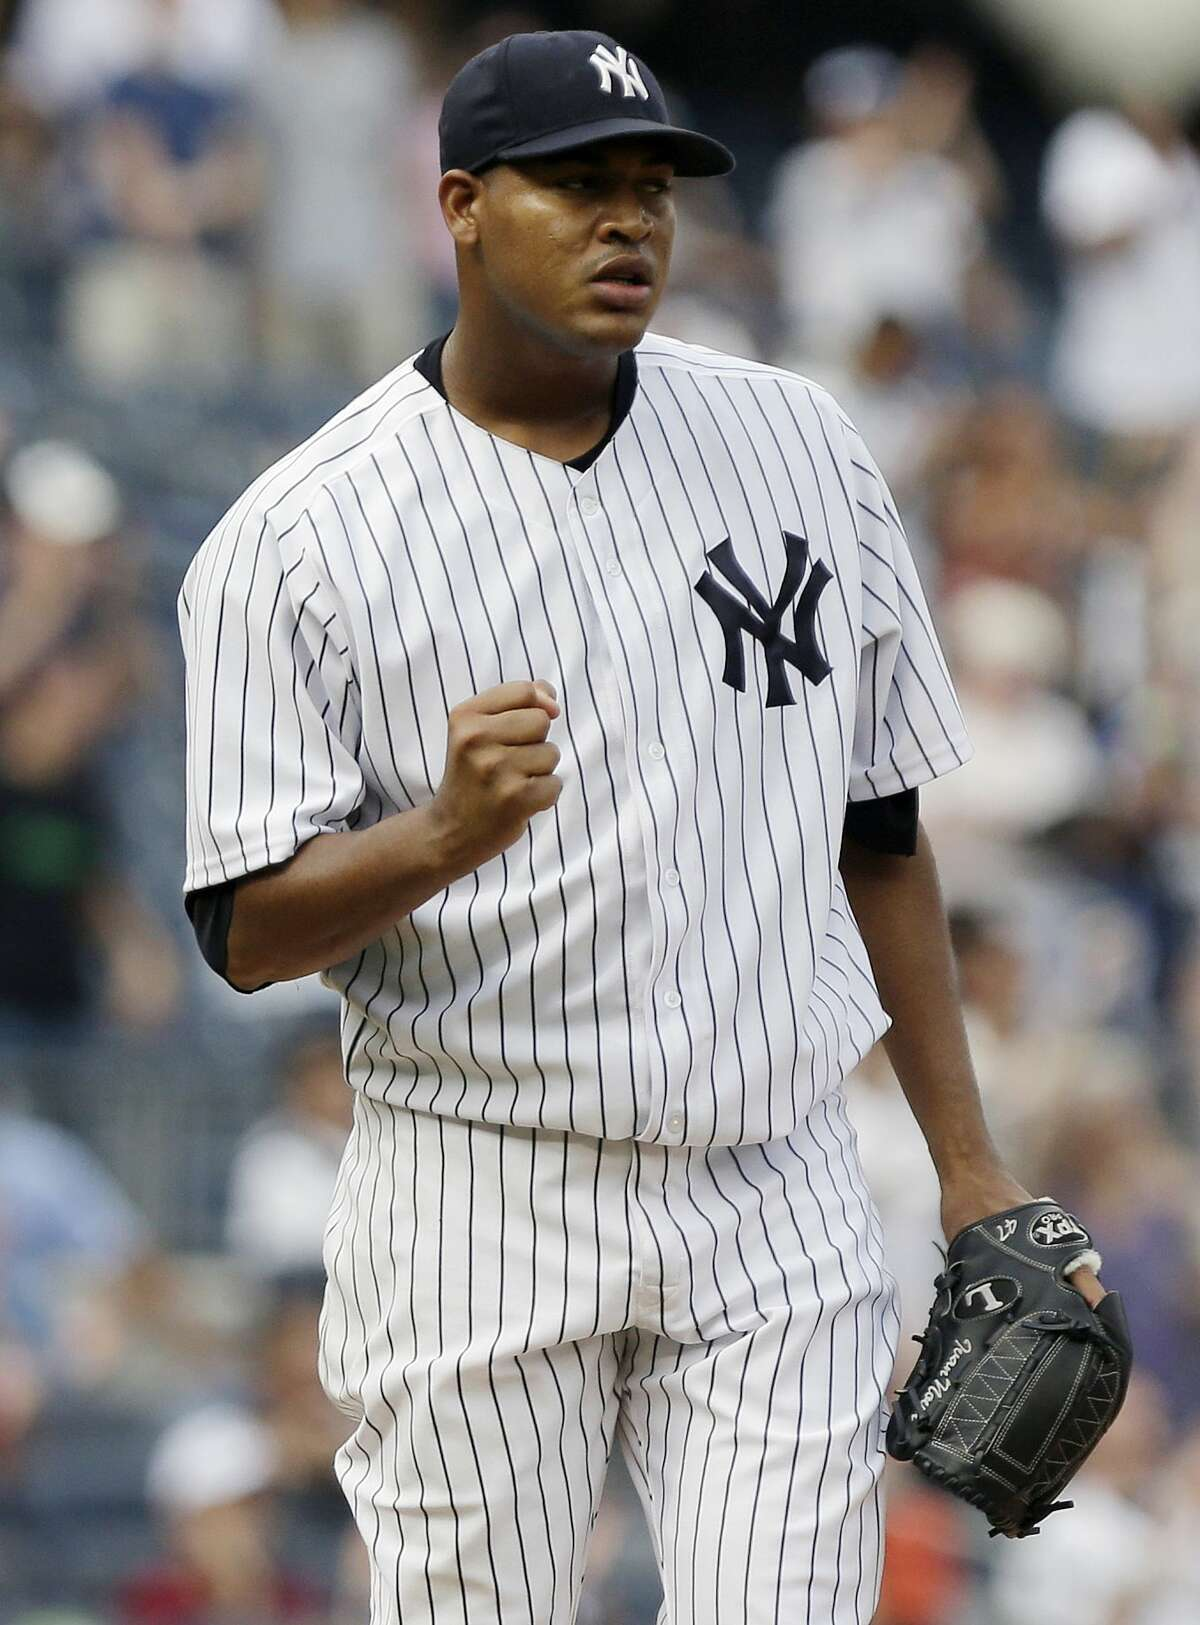 The Yankees agreed to a one-year, non-guaranteed contract with pitcher Ivan Nova on Wednesday, thus avoiding arbitration.